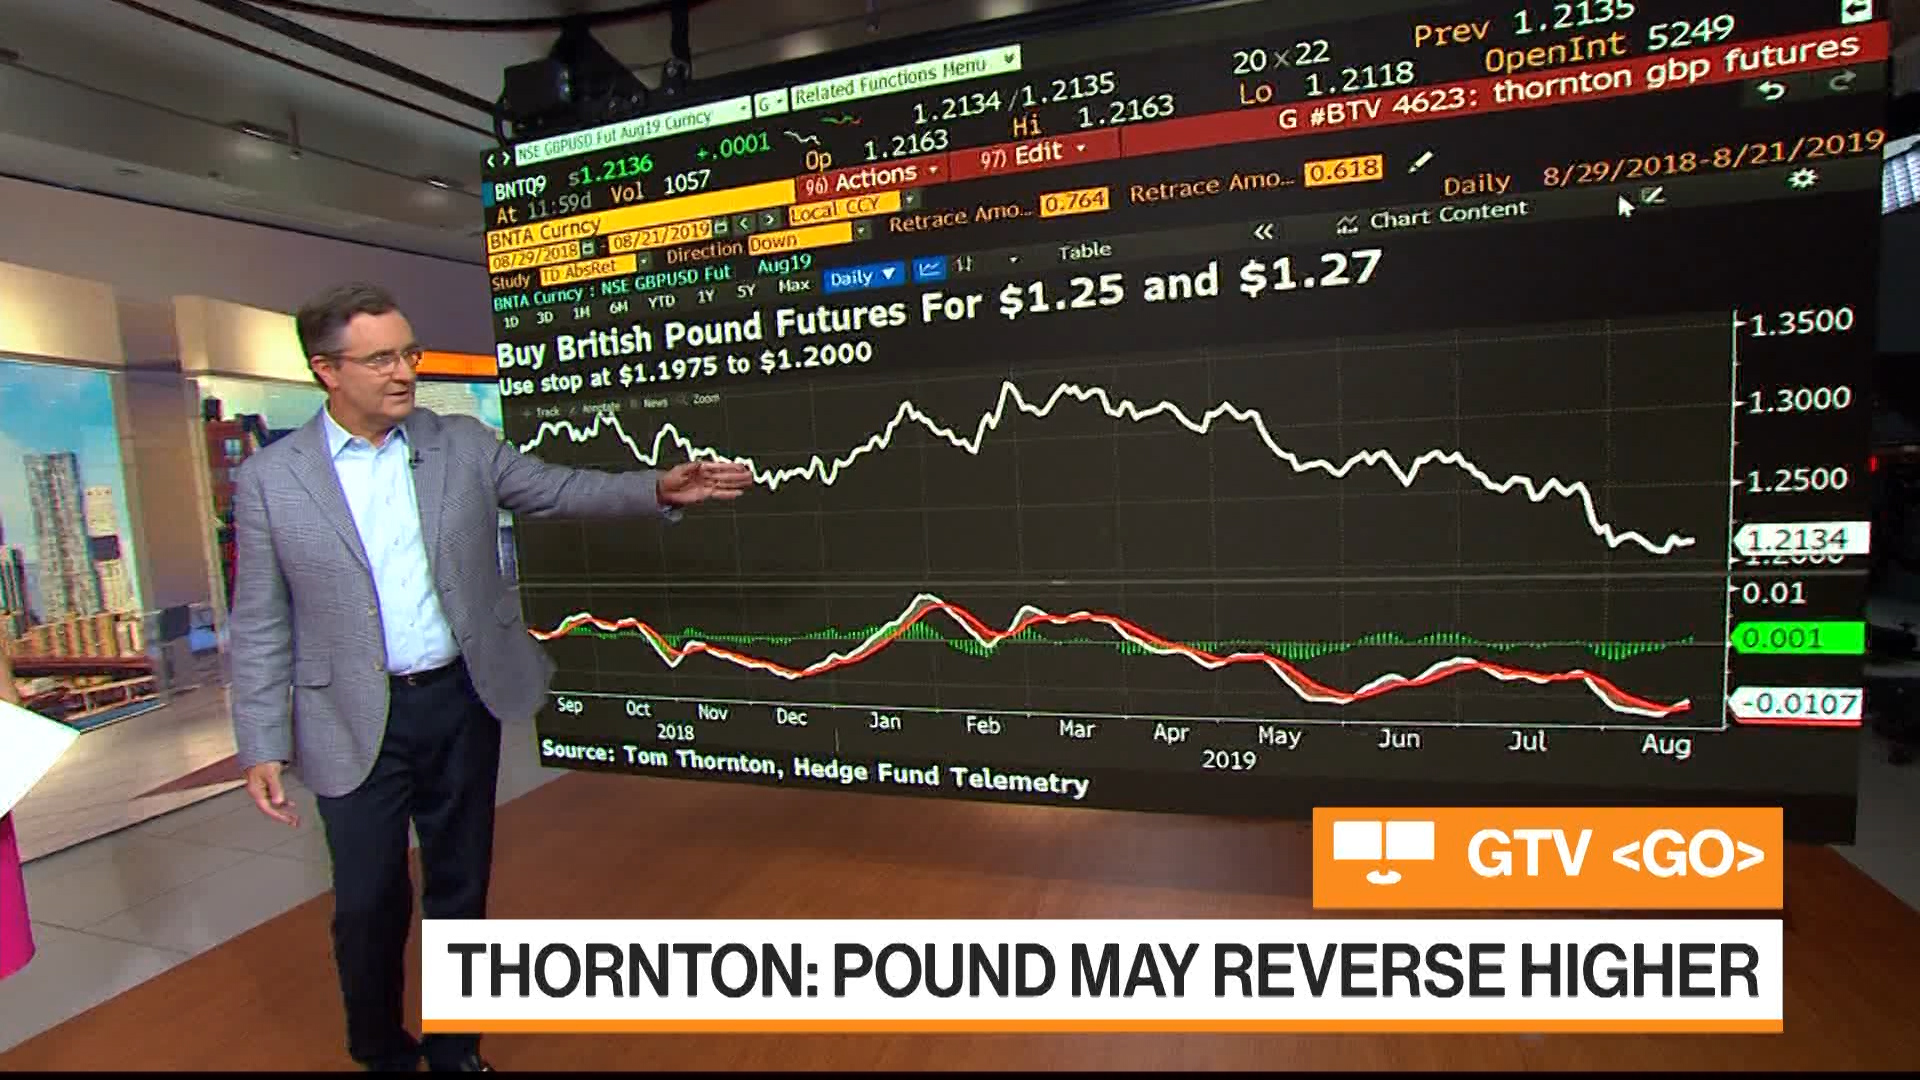 Pound May Reverse Higher: Hedge Fund Telemetry's Tom Thornton